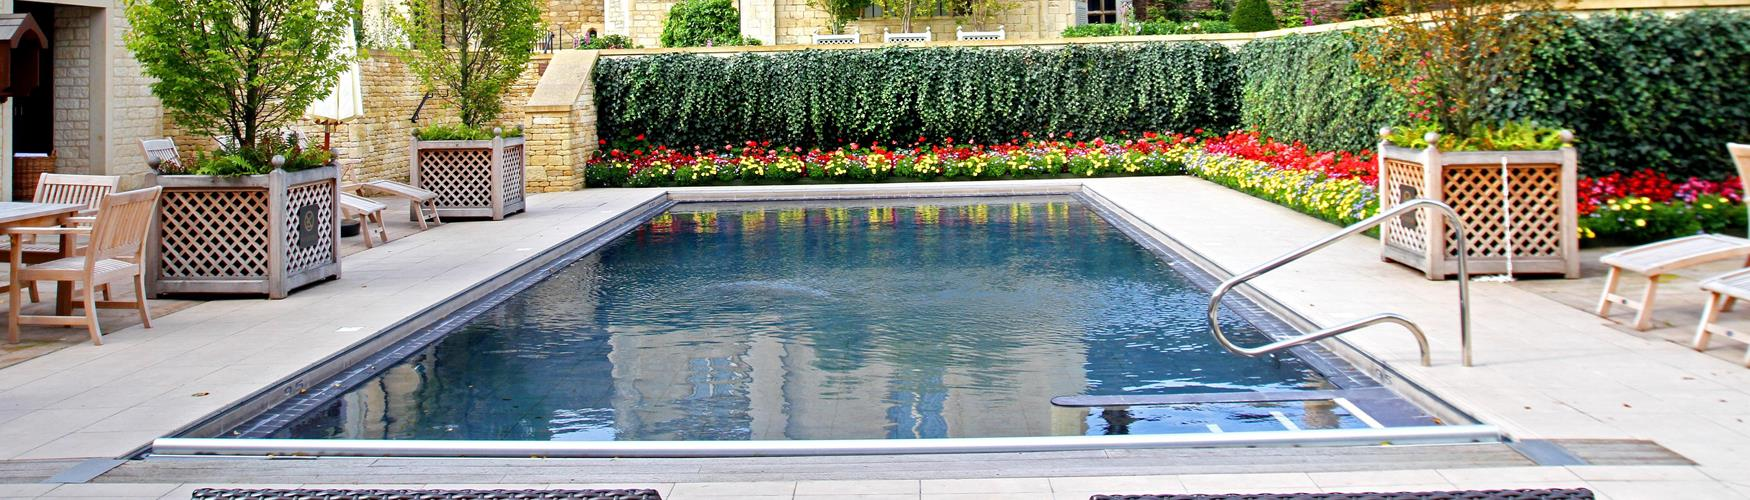 Ellenborough Park Outdoor Pool